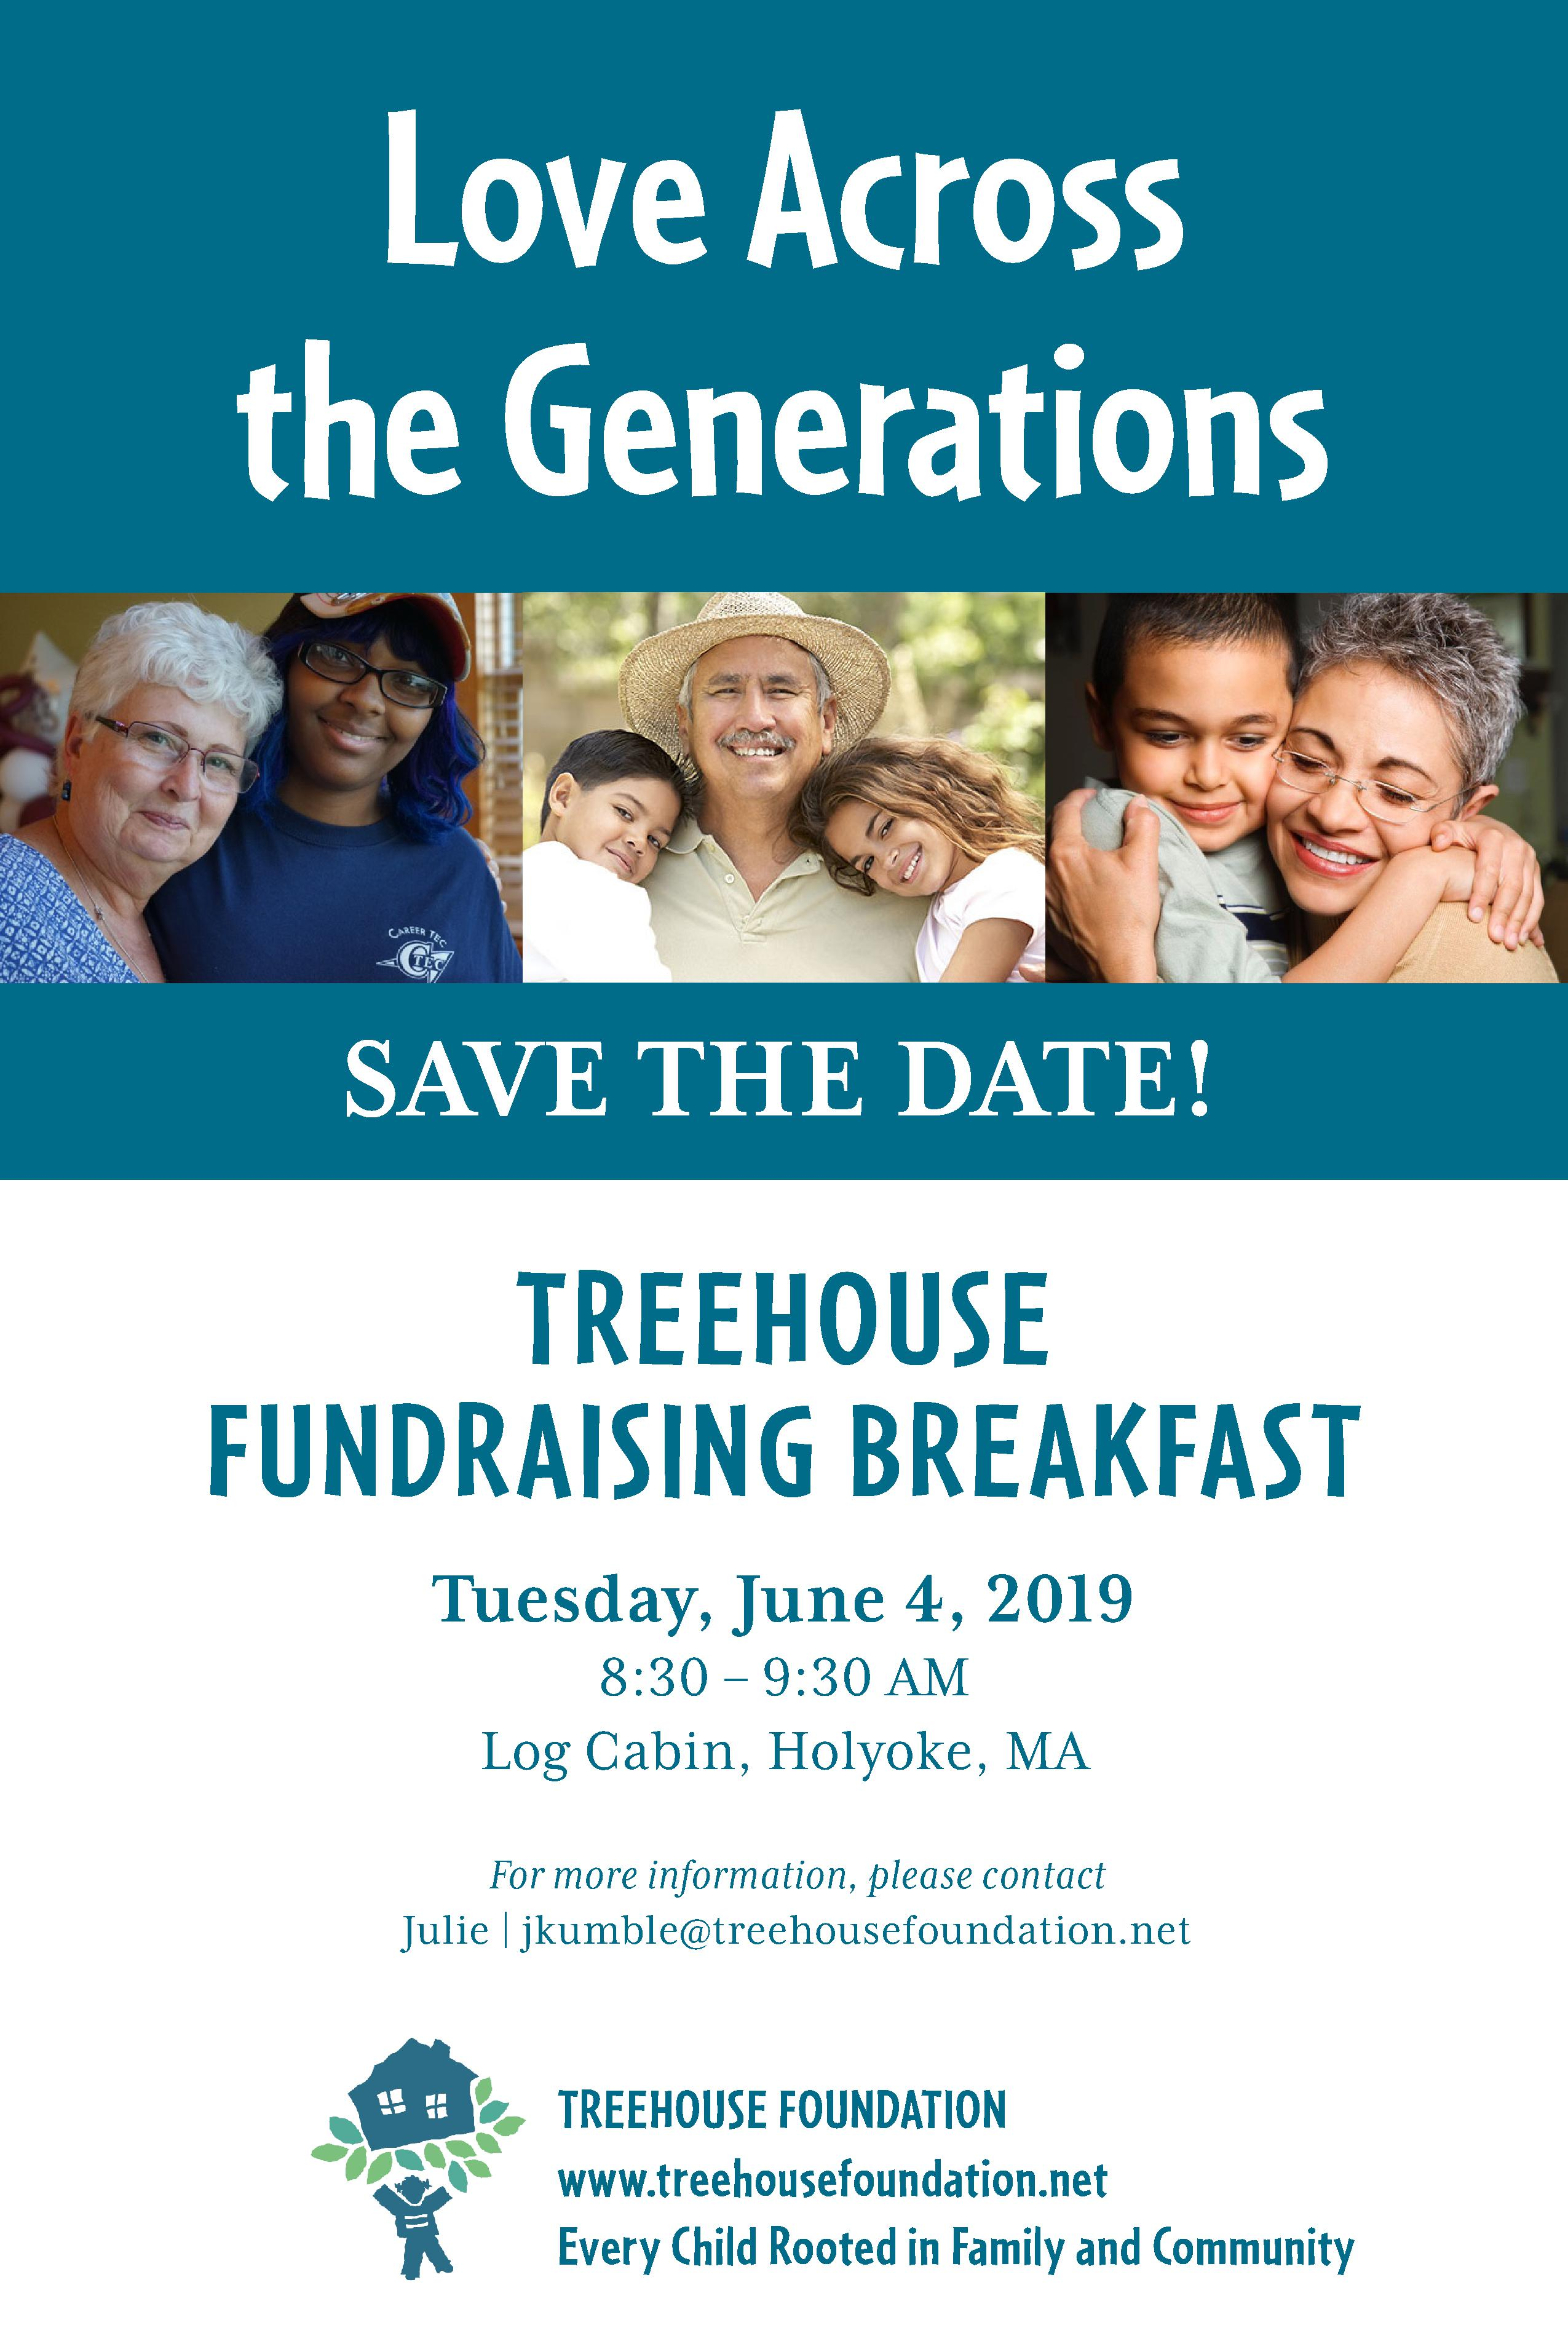 Love Across the Generations Spring Fundraising Event